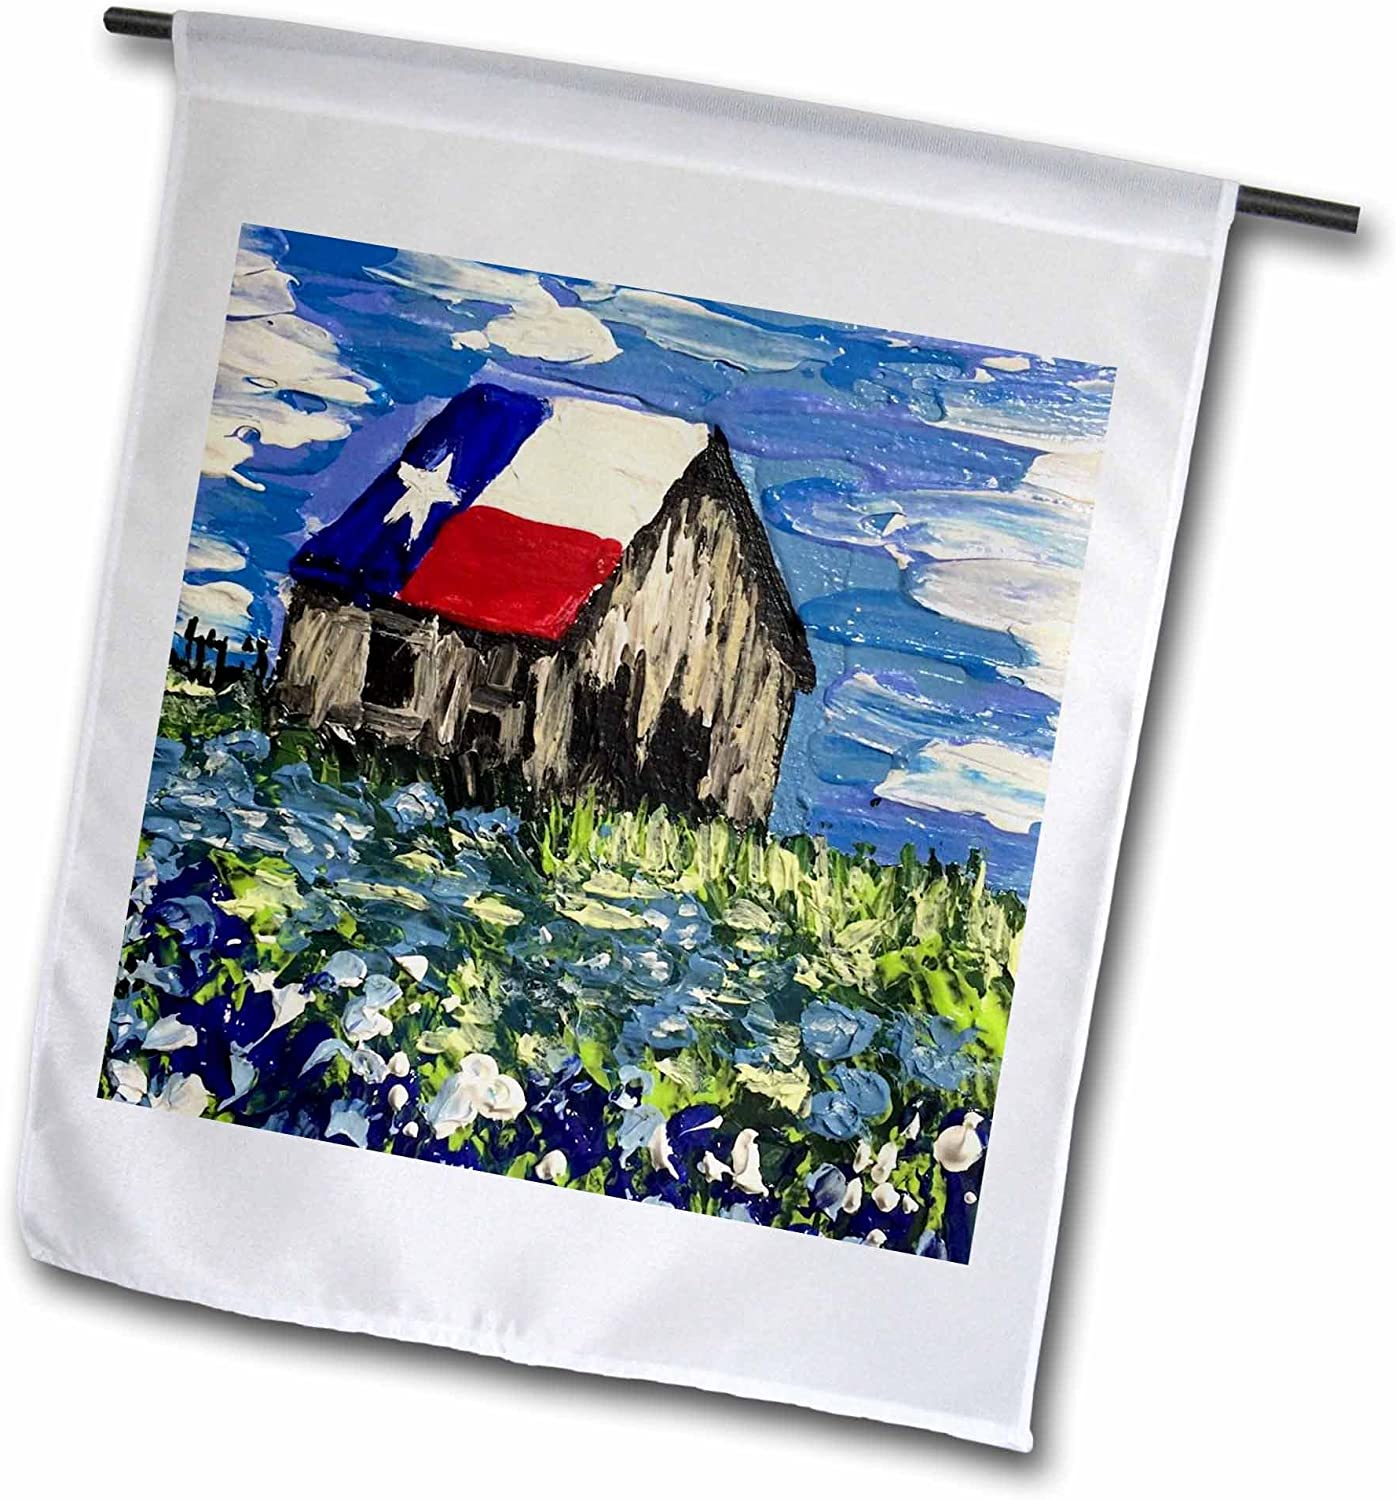 3dRose MelissaA.TorresArtTexas - Image of Painting of Old Texas barn with Bluebonnets - 12 x 18 inch Garden Flag (fl_223363_1)